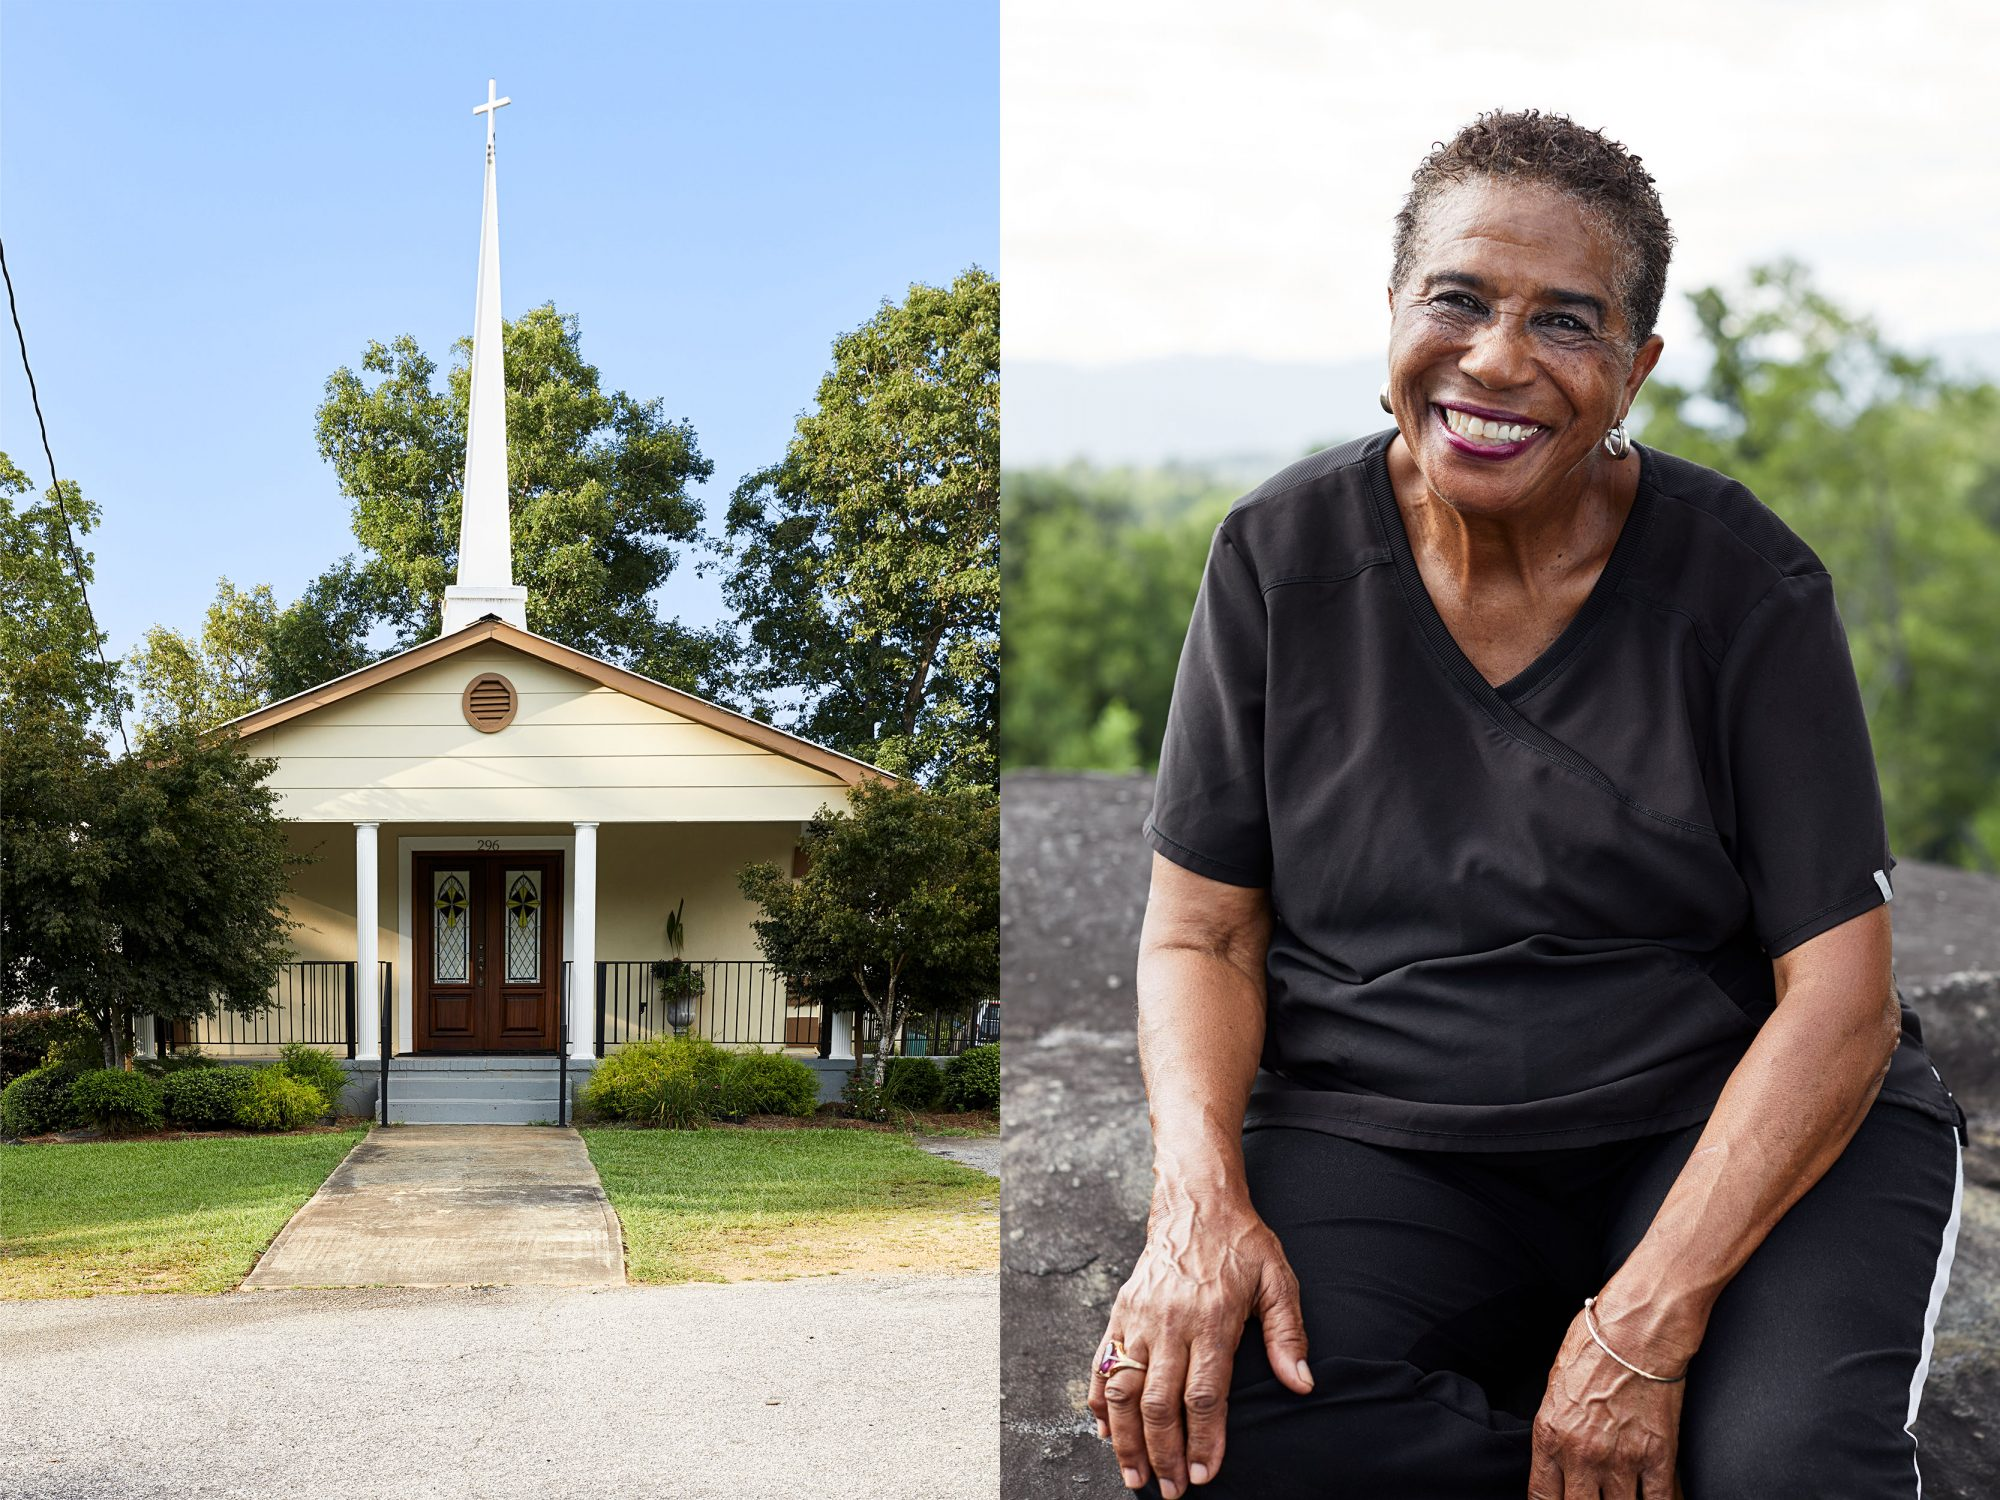 A view of the front door of Soapstone Baptist Church and portrait of Mabel sitting on a rock.